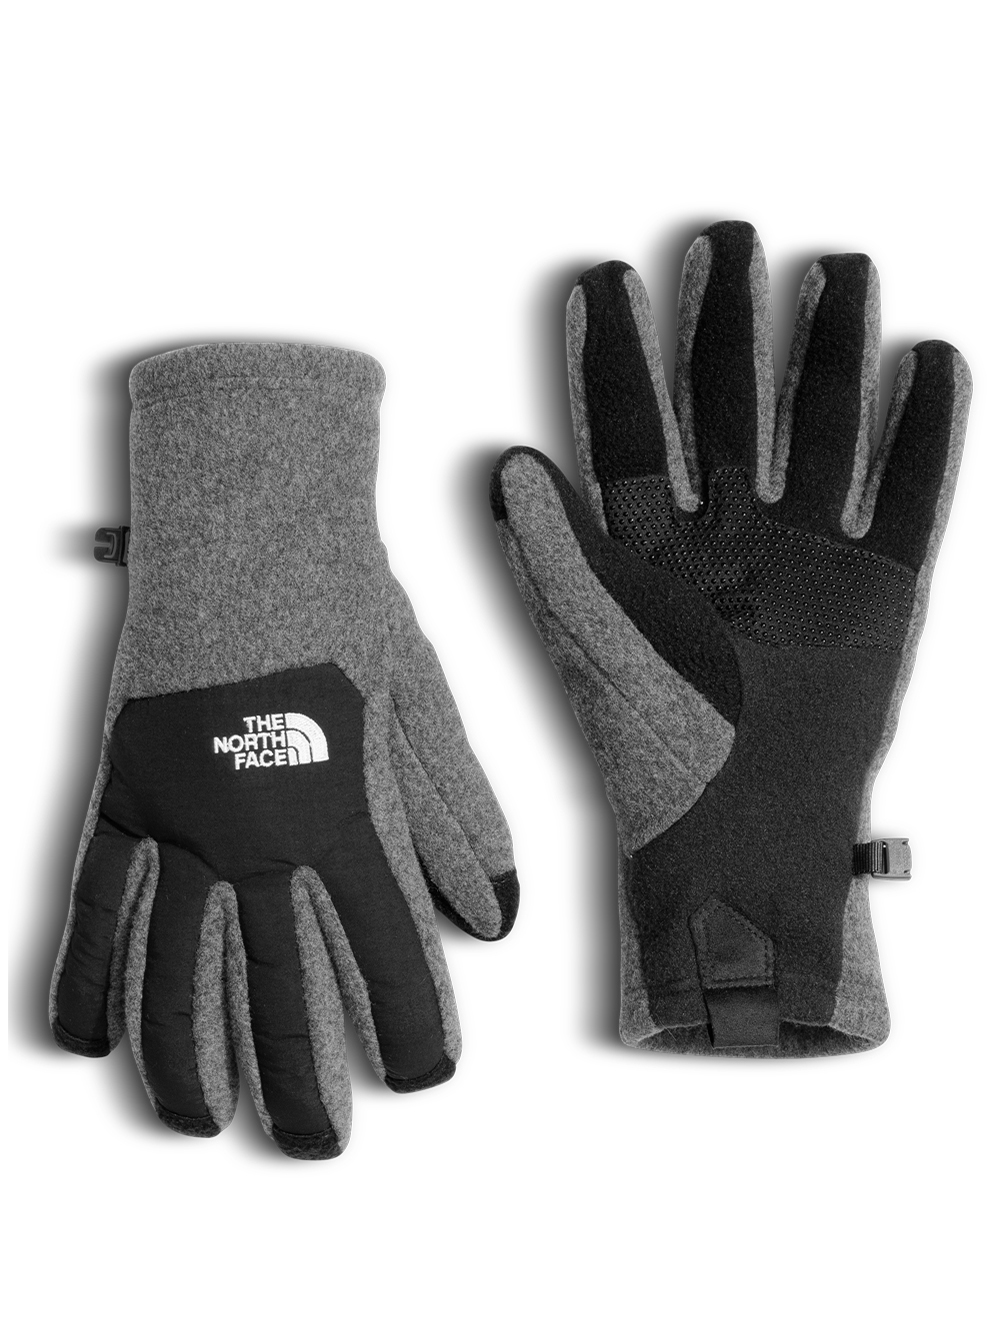 The North Face Men's Denali Etip Gloves (Sizes S - XL)